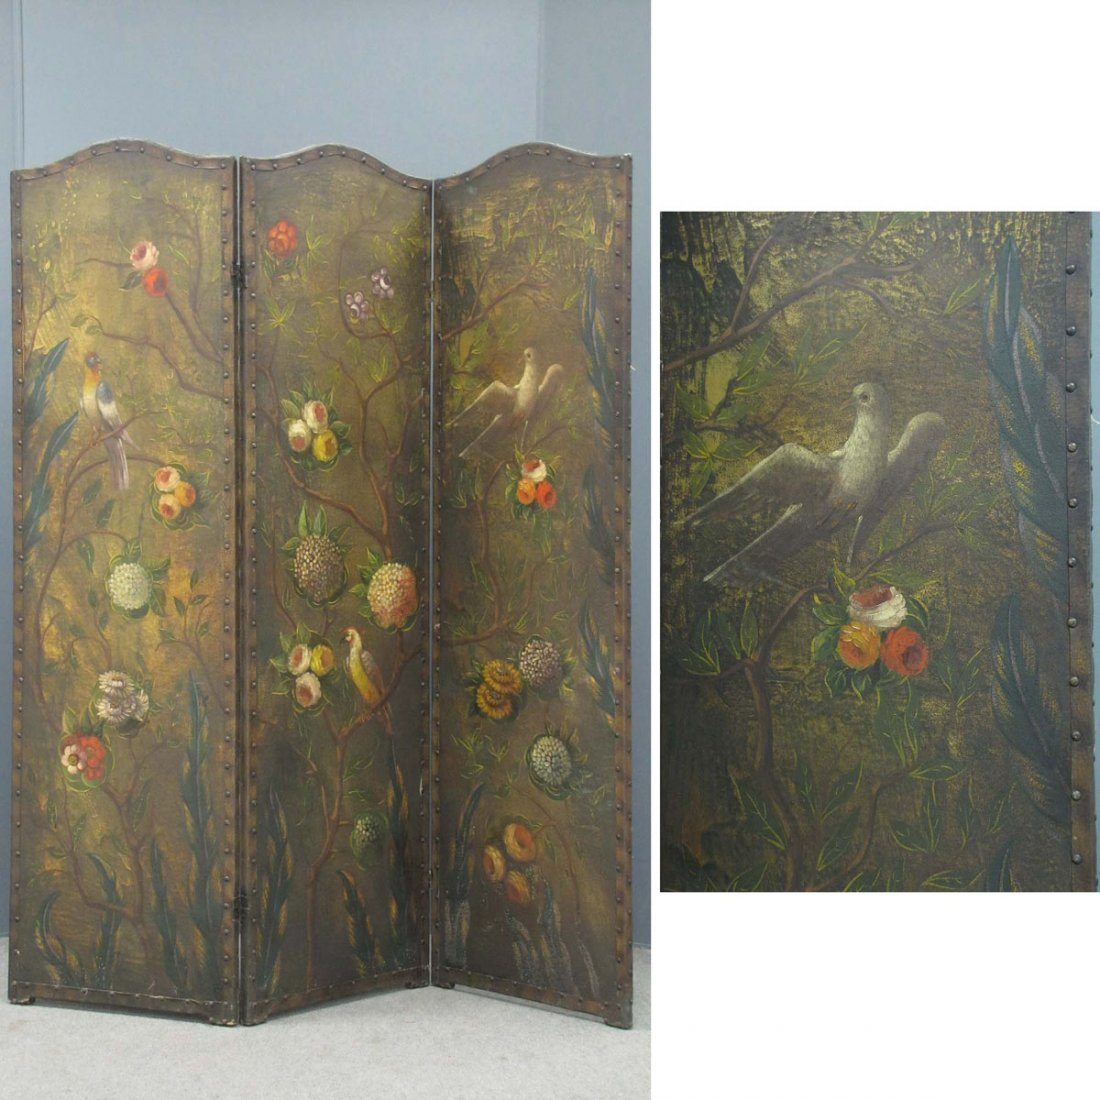 ART DECO HAND DECORATED 3-PANEL SCREEN